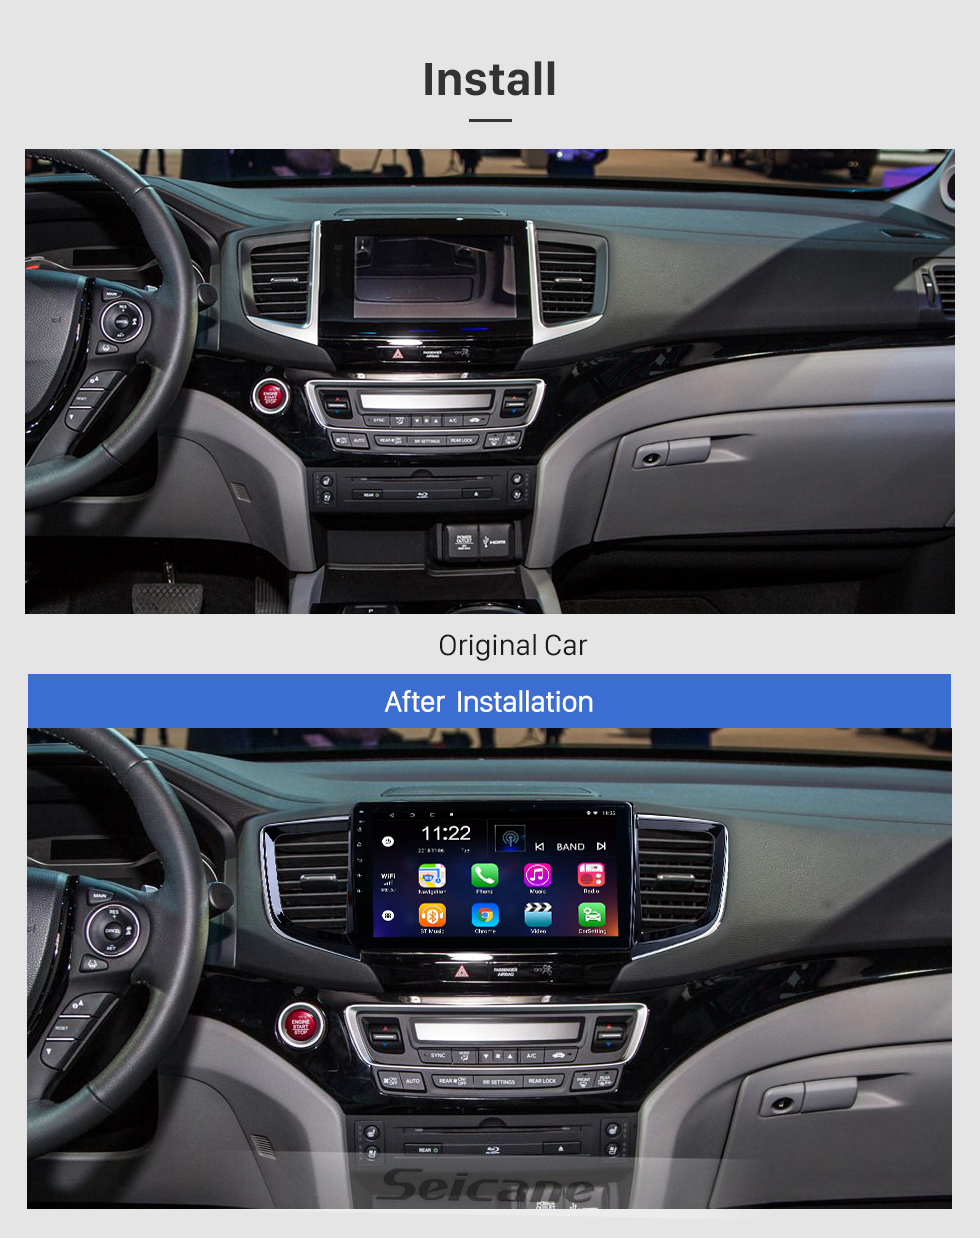 Seicane HD Touchscreen 10.1 inch Android 10.0 for 2016 Honda Pilot Radio GPS Navigation System with Bluetooth support Carplay DAB+